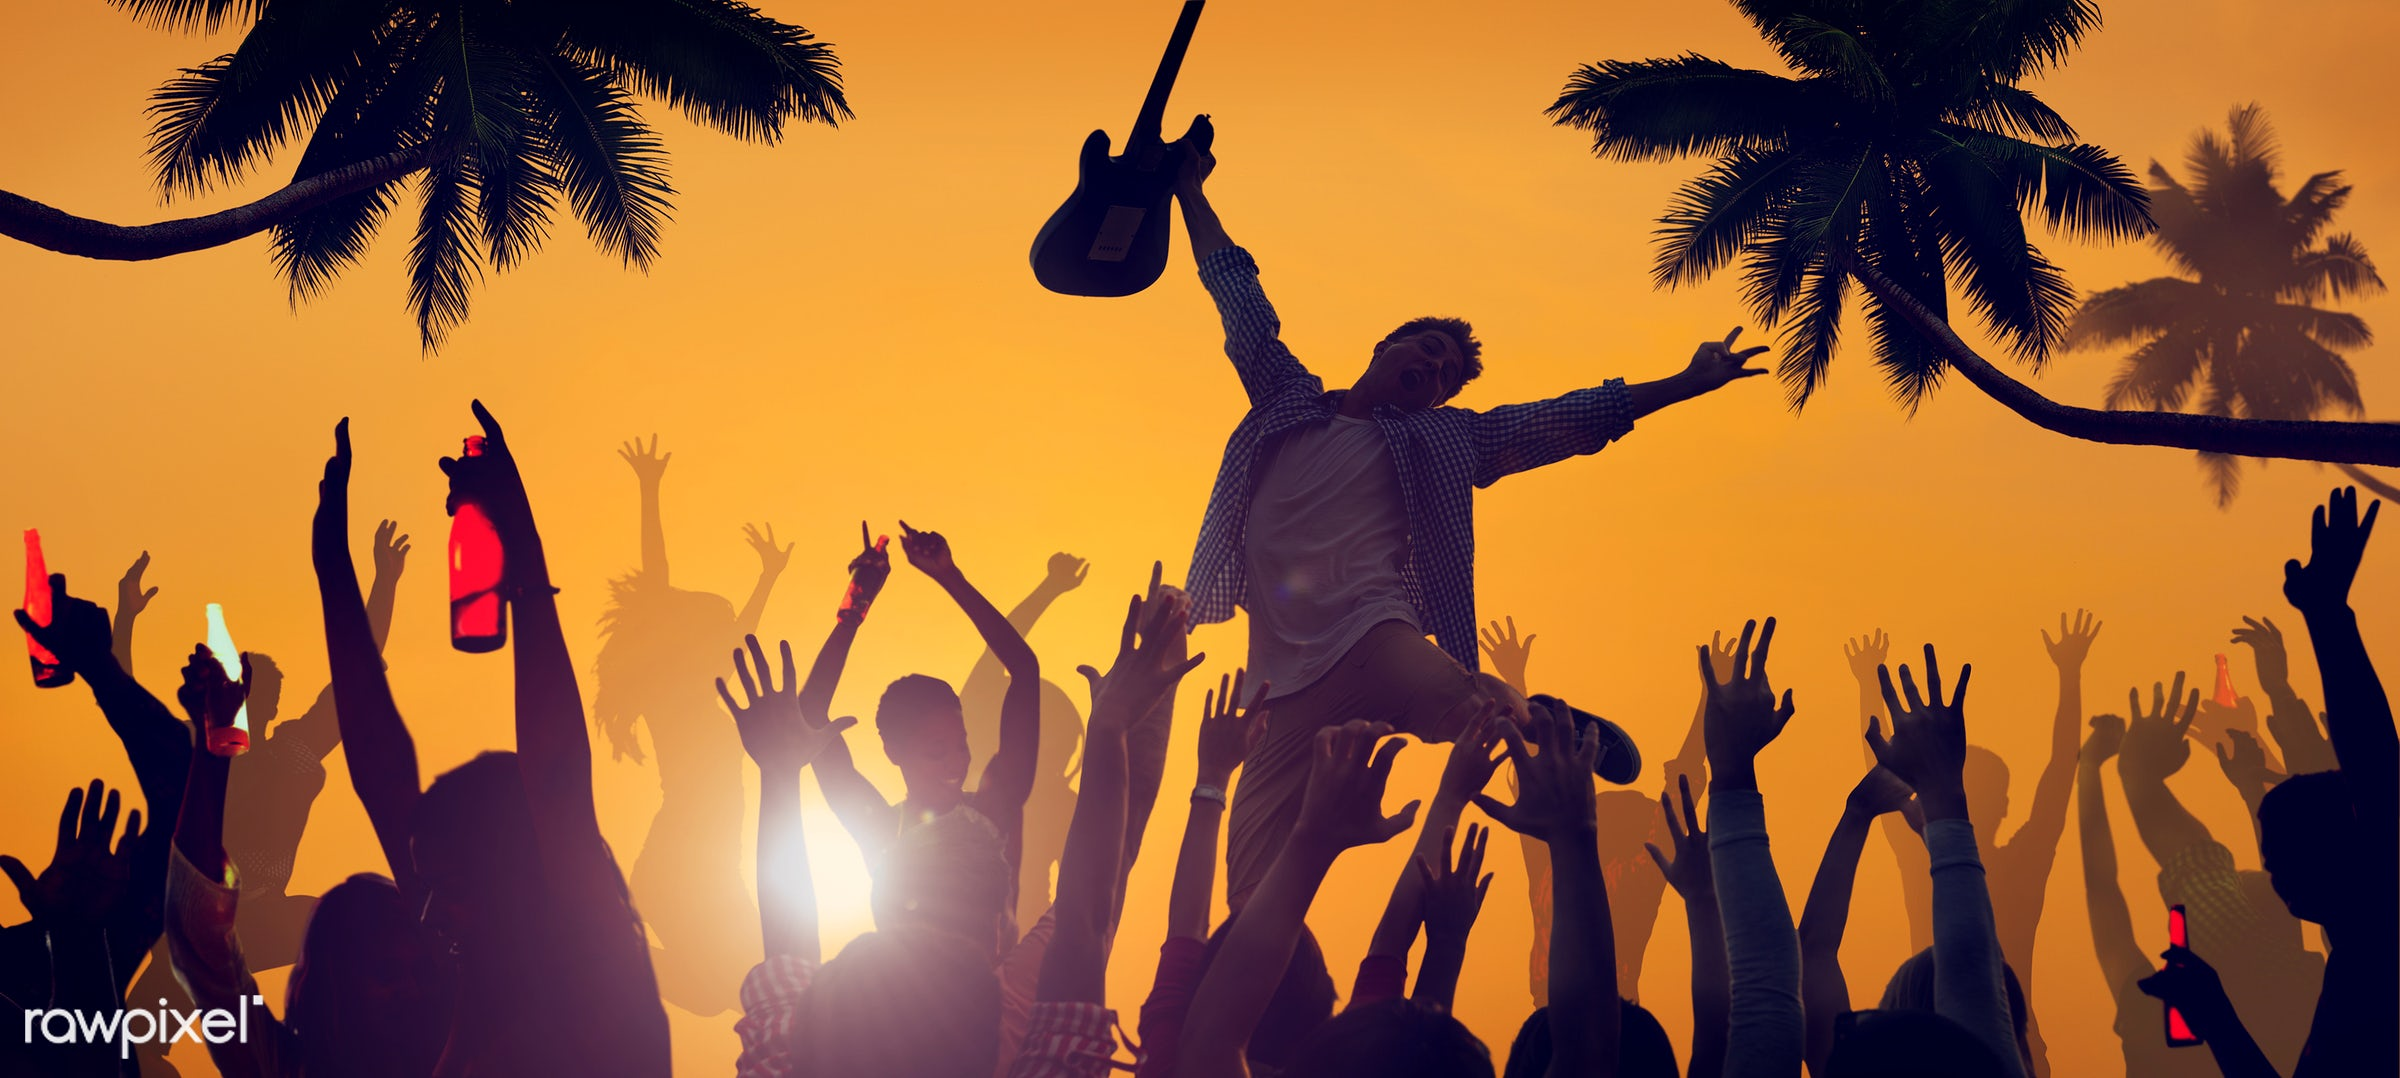 adolescence, arms raised, audience, back lit, carefree, celebration, cheerful, communication, community, concert, crowd,...